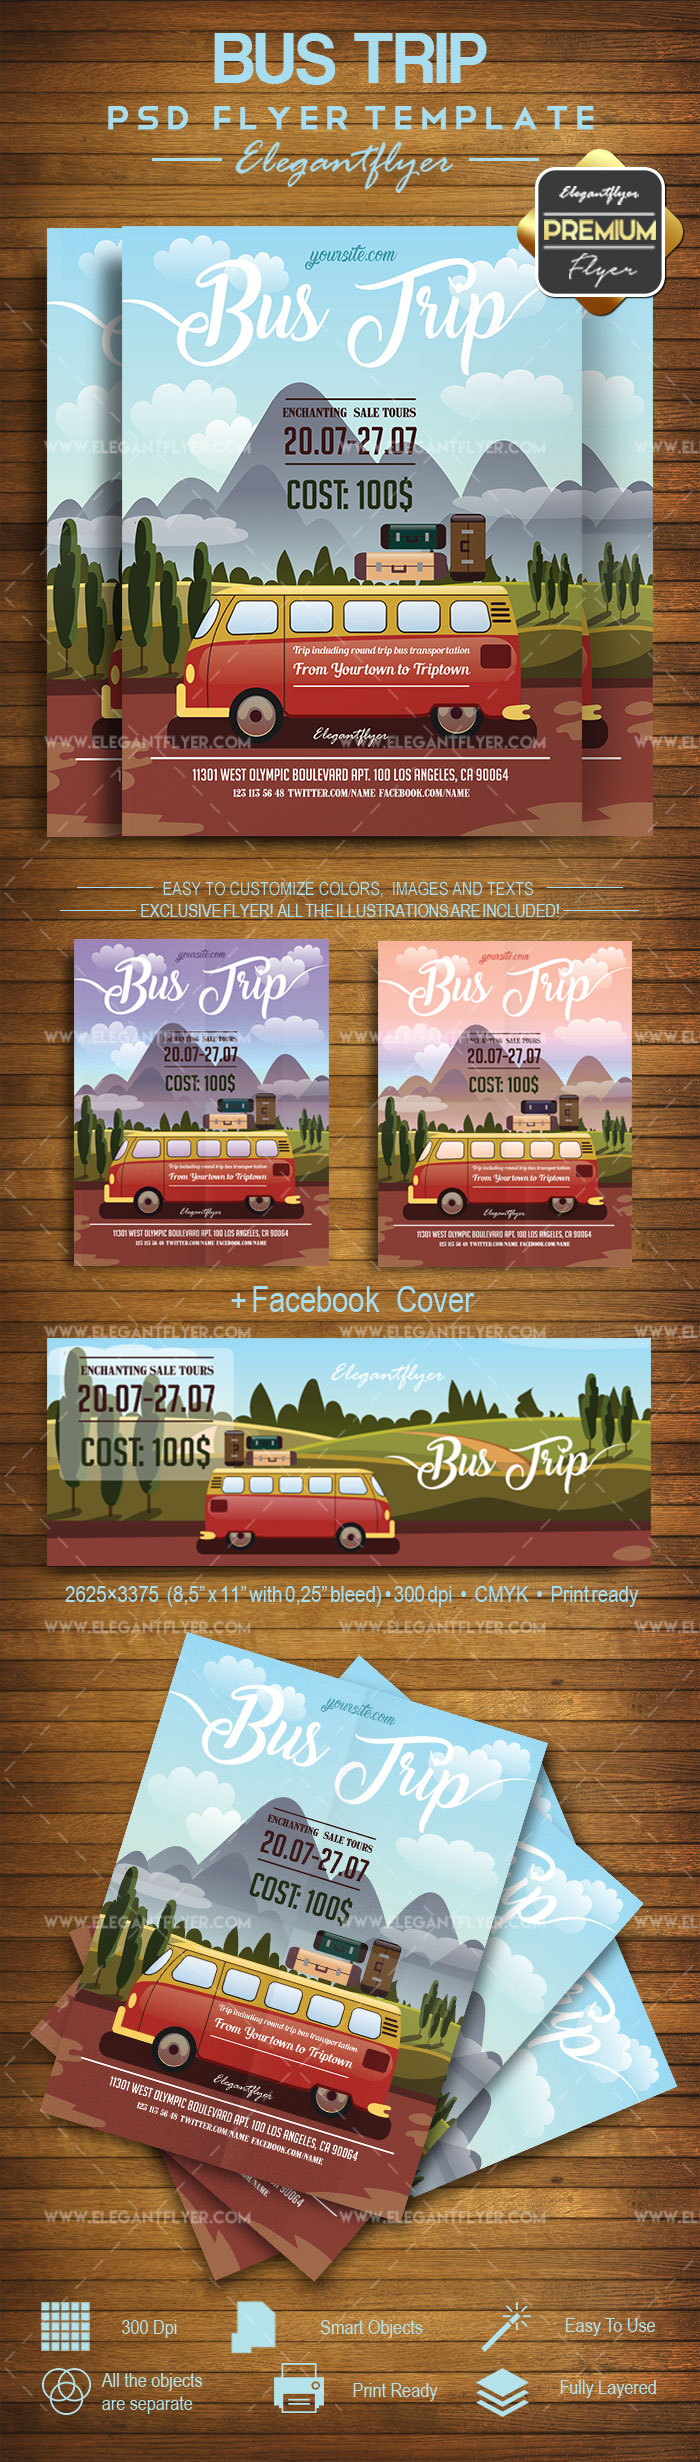 Bus Trip Flyer Templates